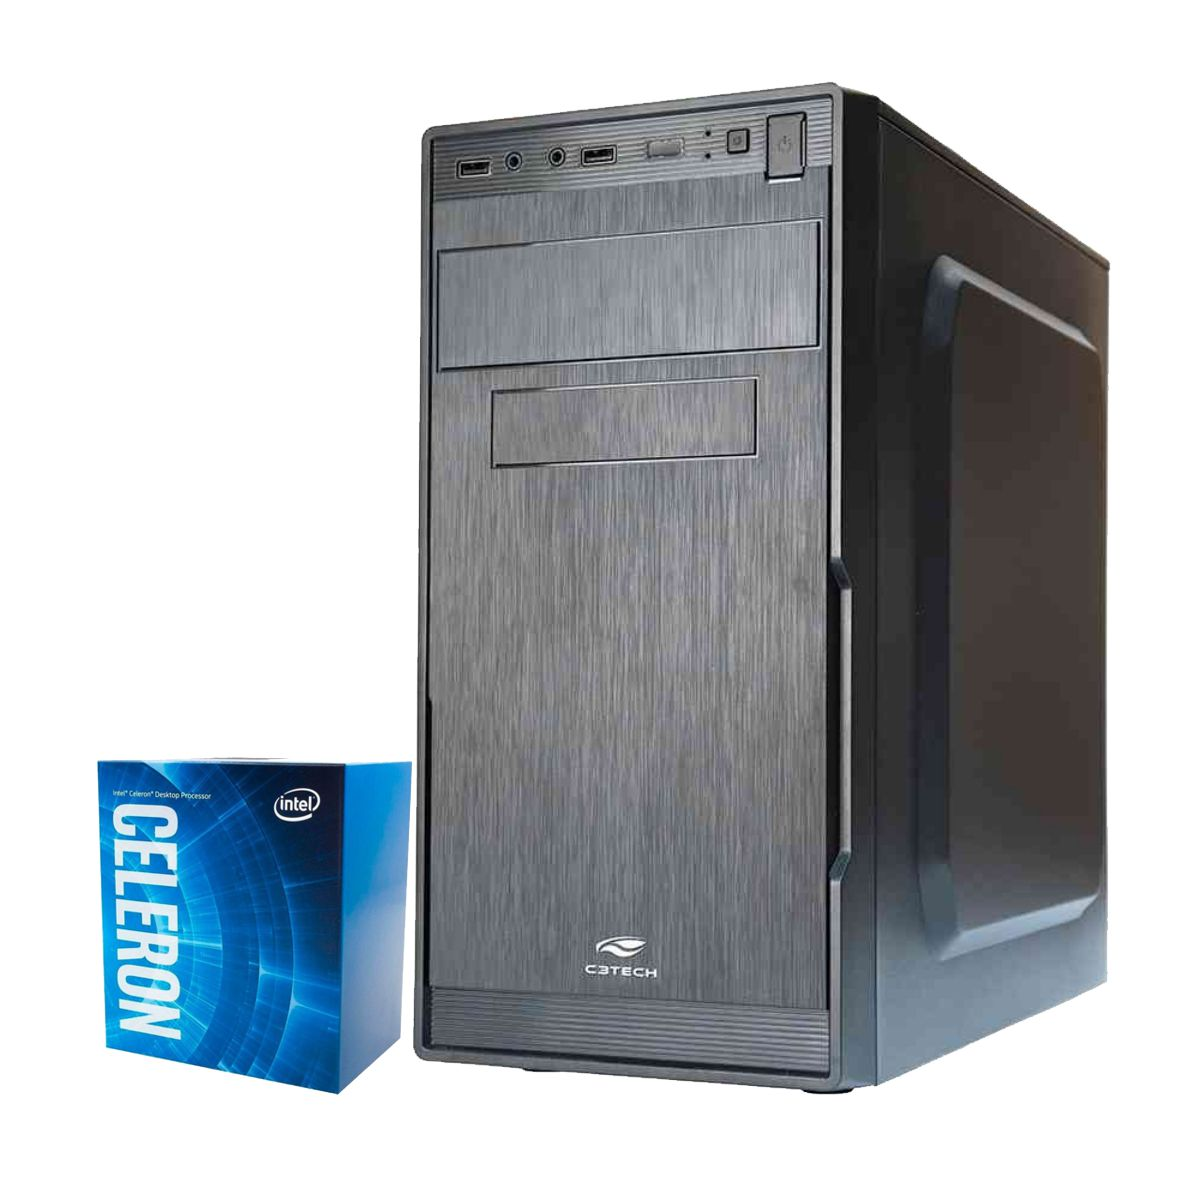 Computador Kit Work/home Intel Celeron G4930 4gb Ddr4 Hd 1000gb